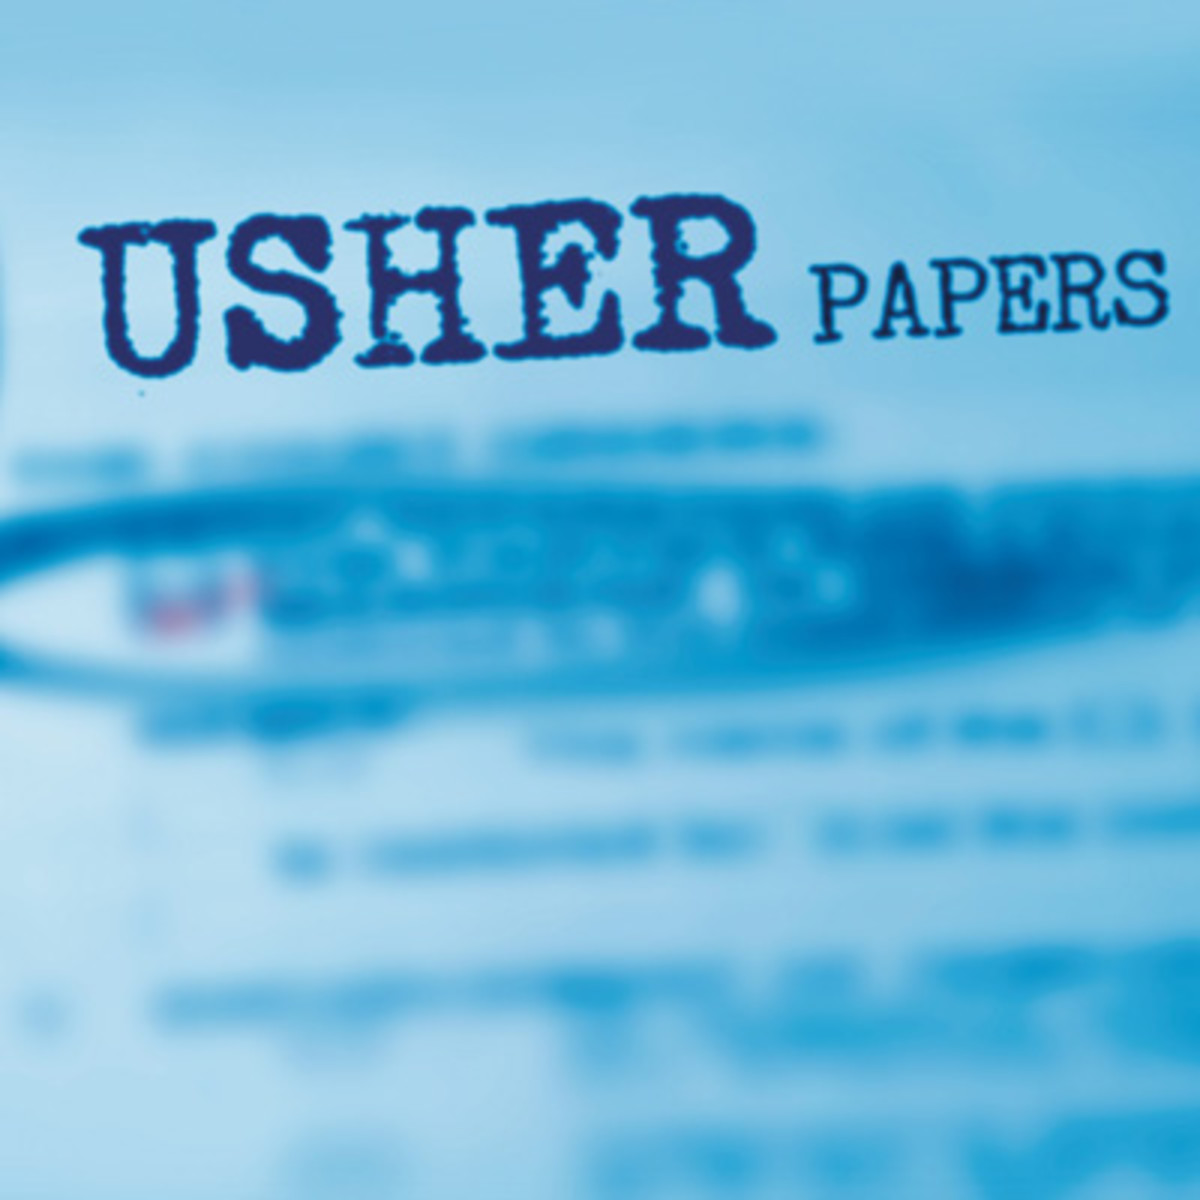 usher-papers.jpg